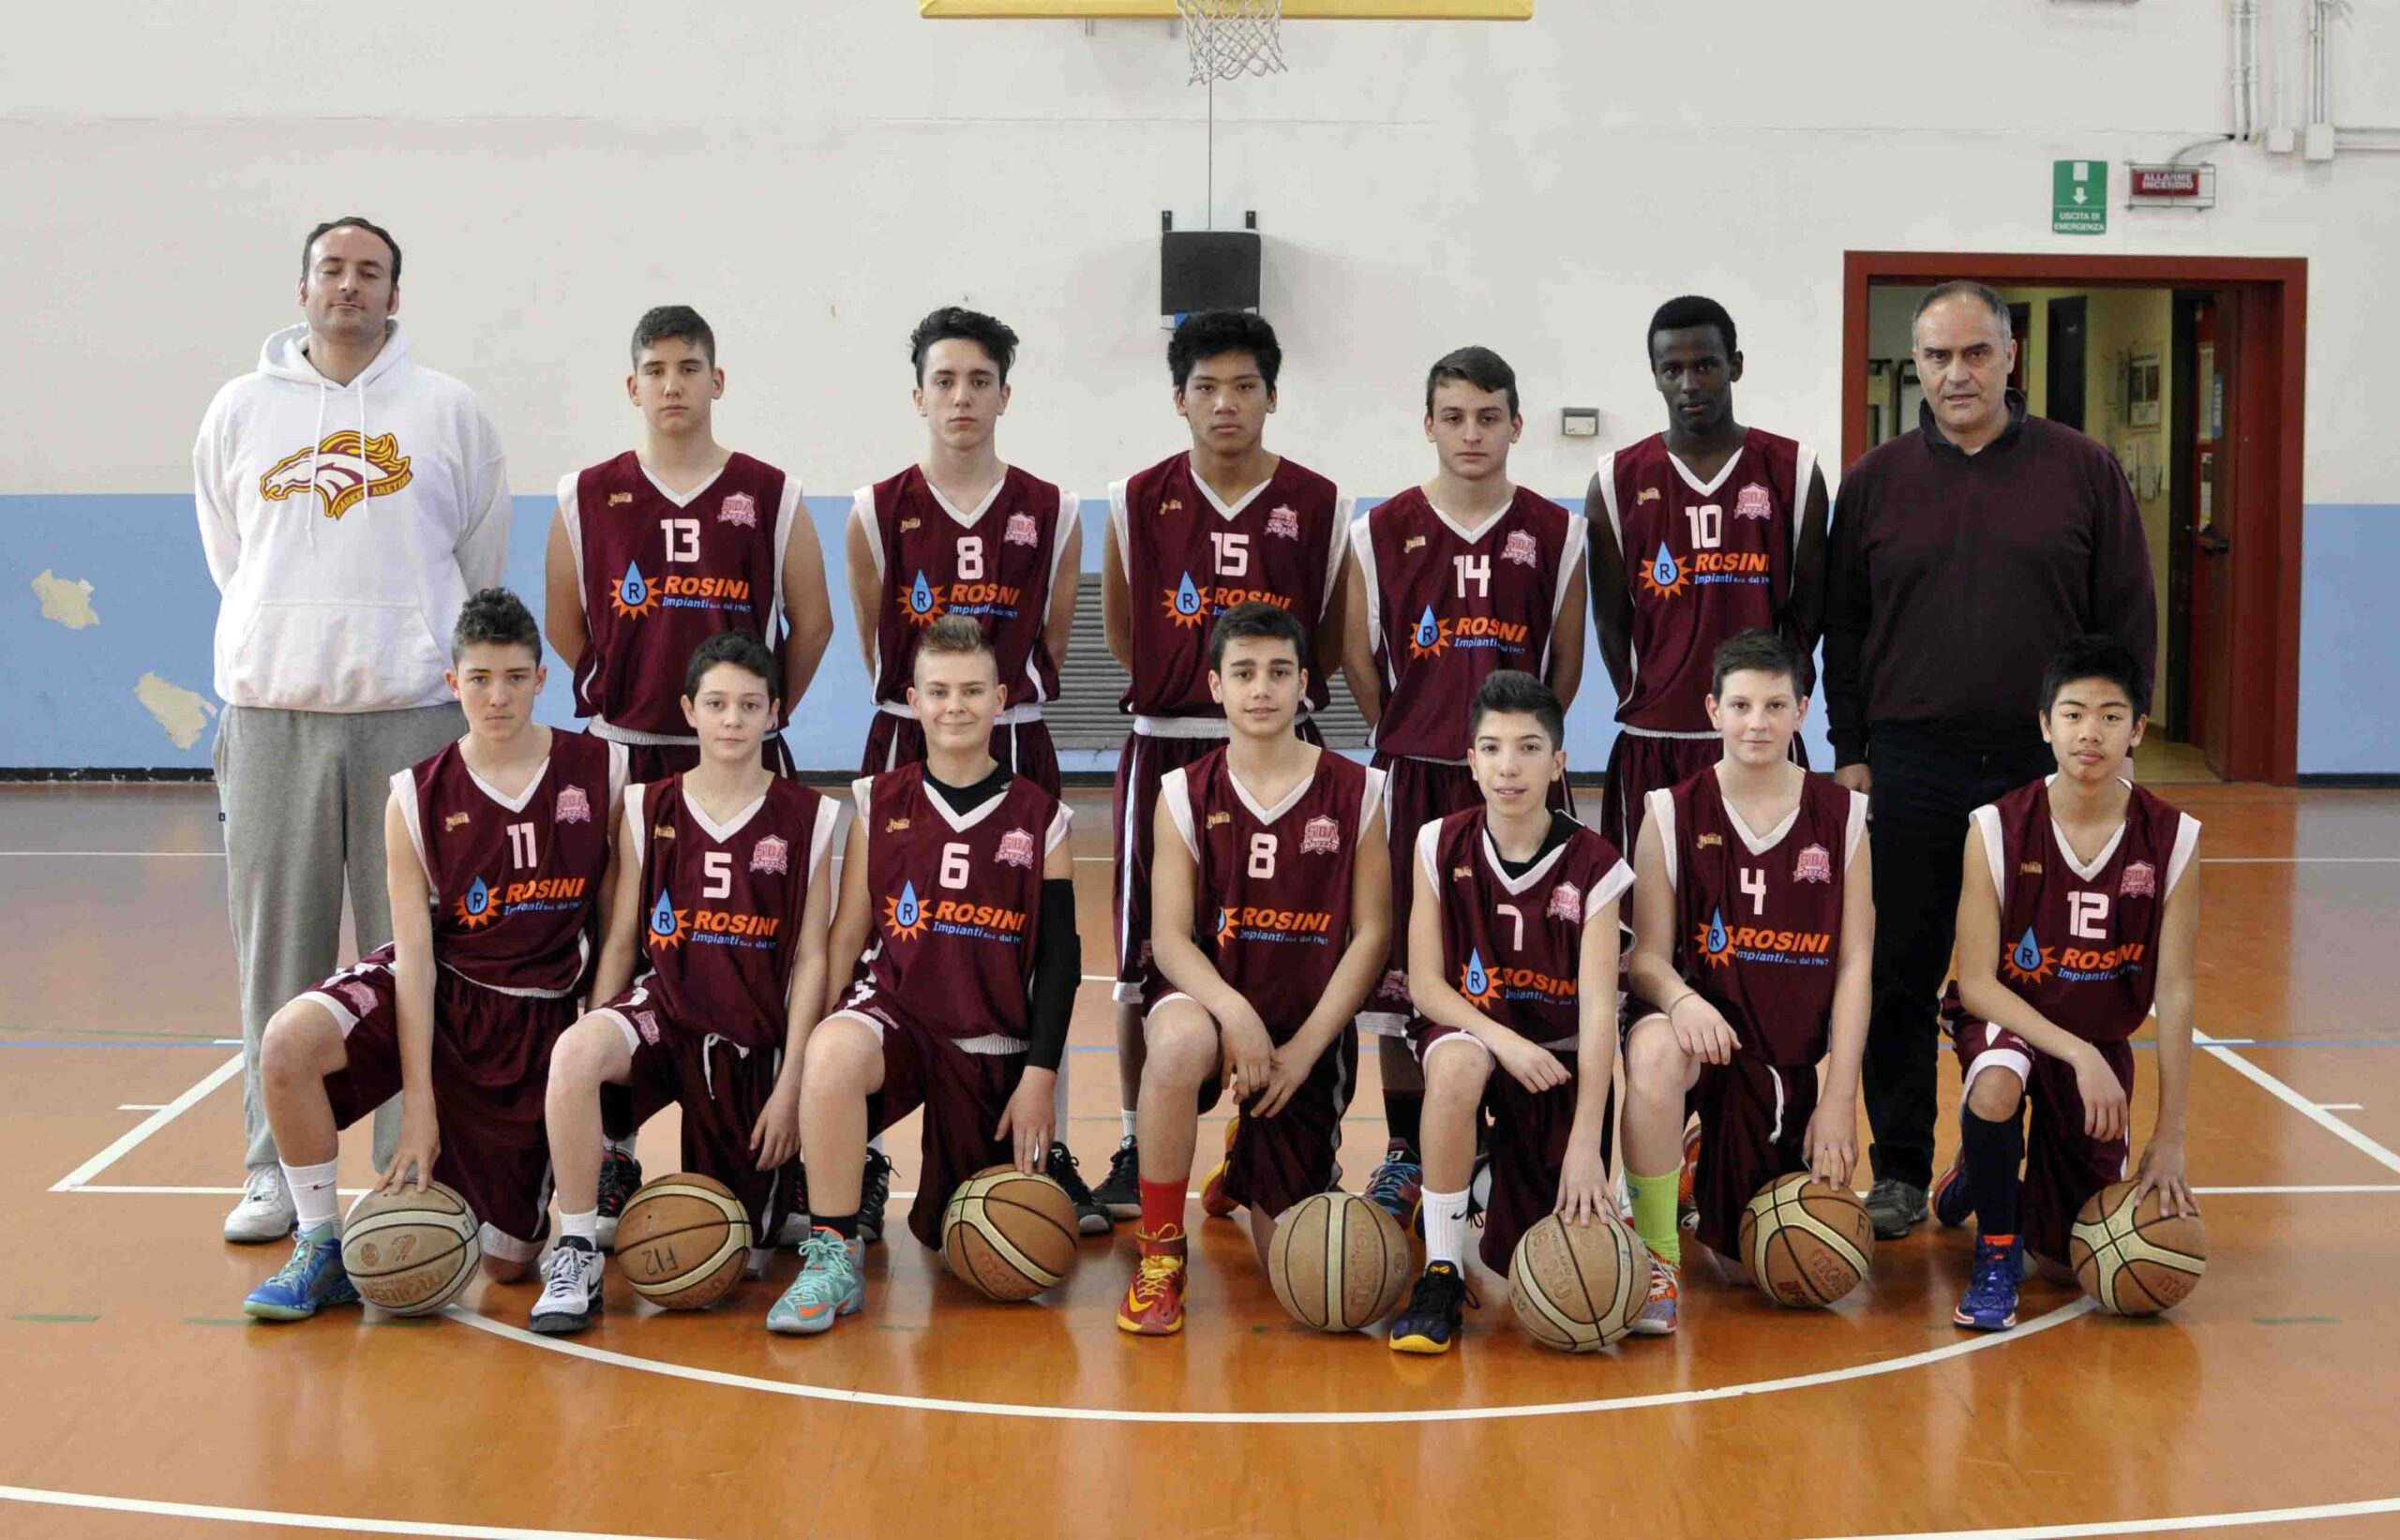 Photo of BASKET – La Sba vince il campionato con l'Under 15 Rosini